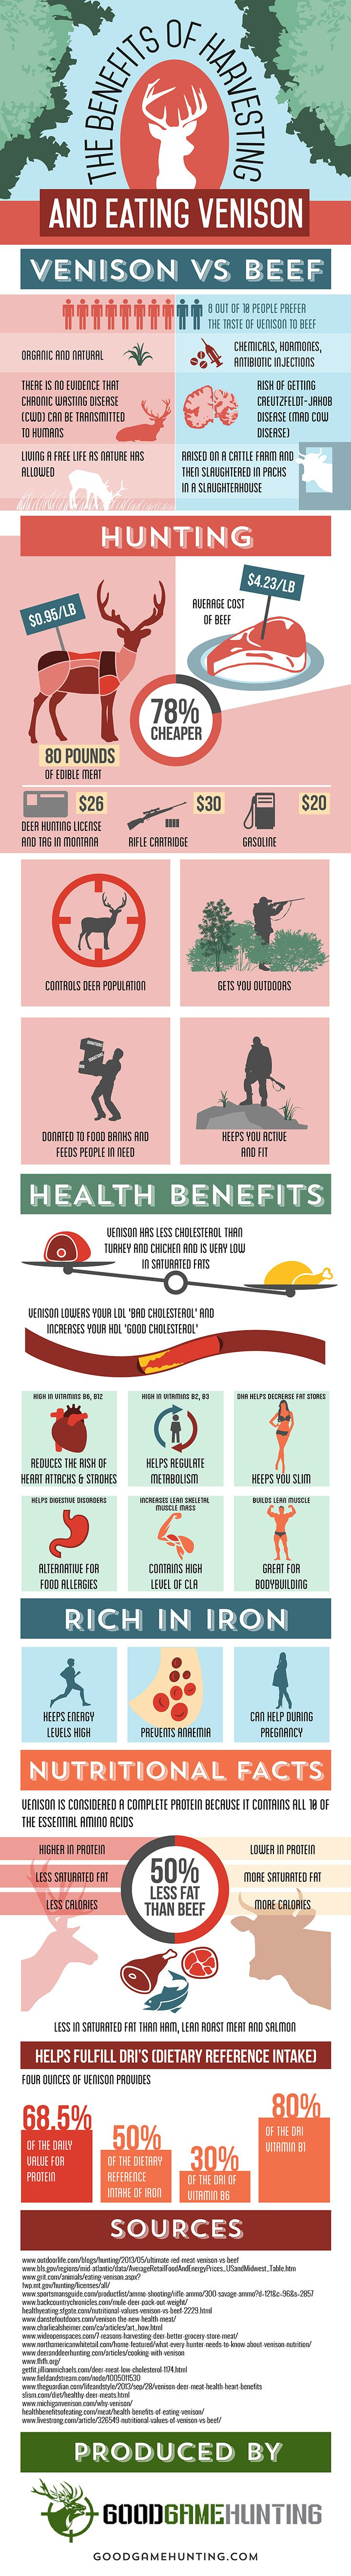 THE BENEFITS OF VENISON